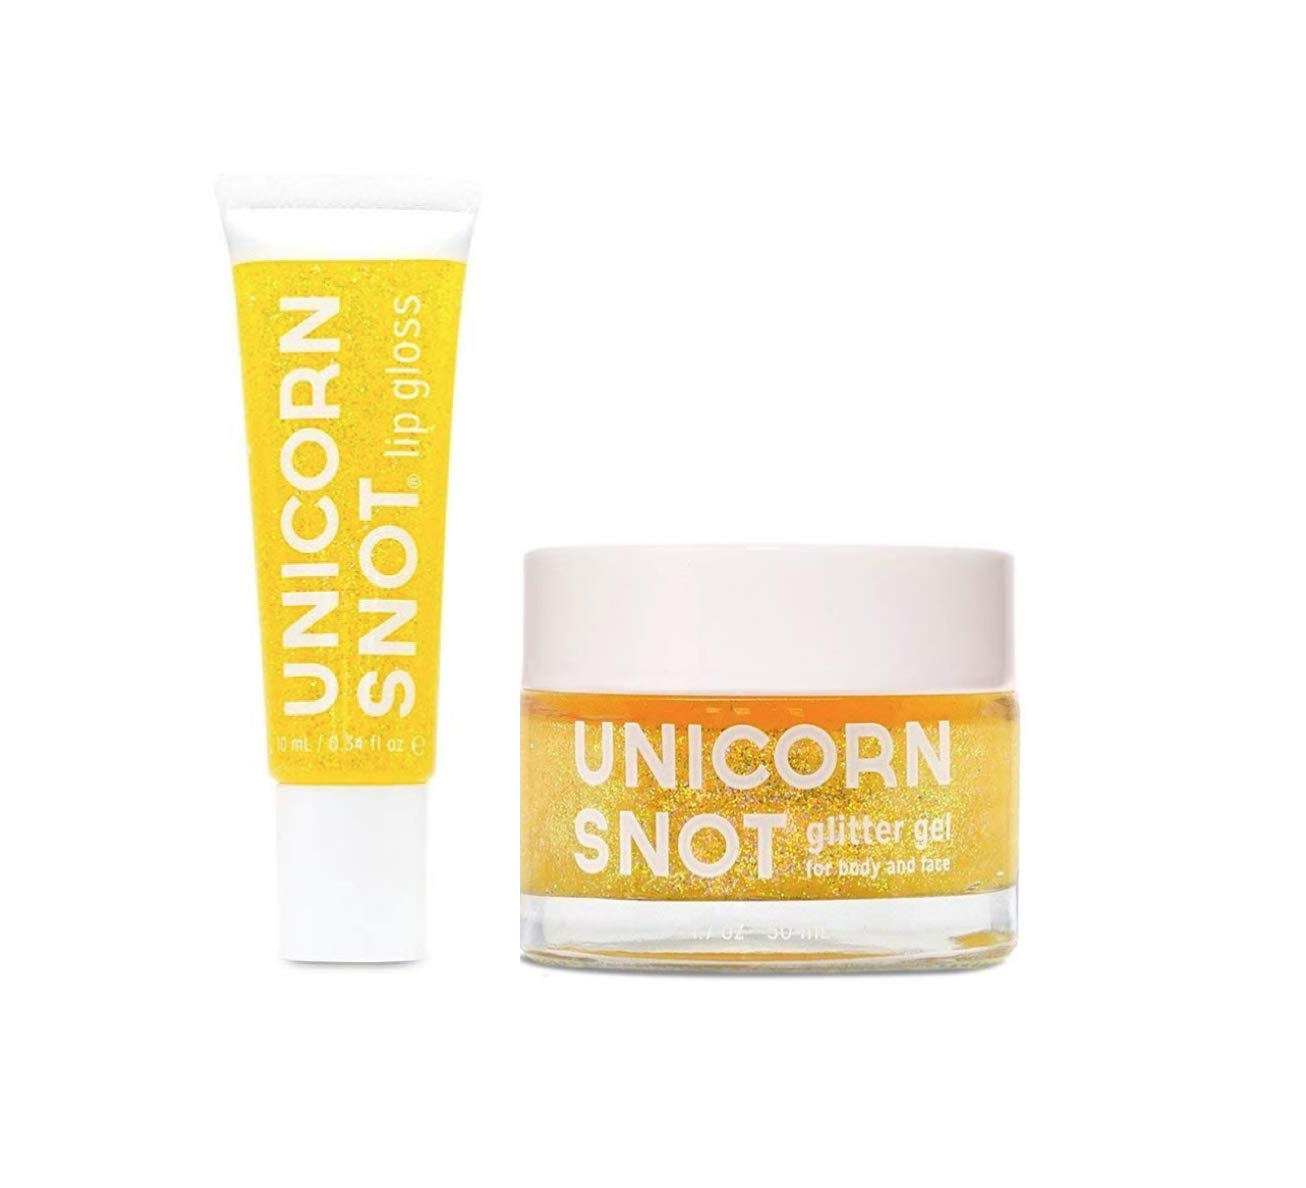 Unicorn Snot Holographic Glitter Lip Gloss + Gel, Combo Pack, Vegan & Cruelty-Free (Gold) Unicorn Snot Lip Gloss